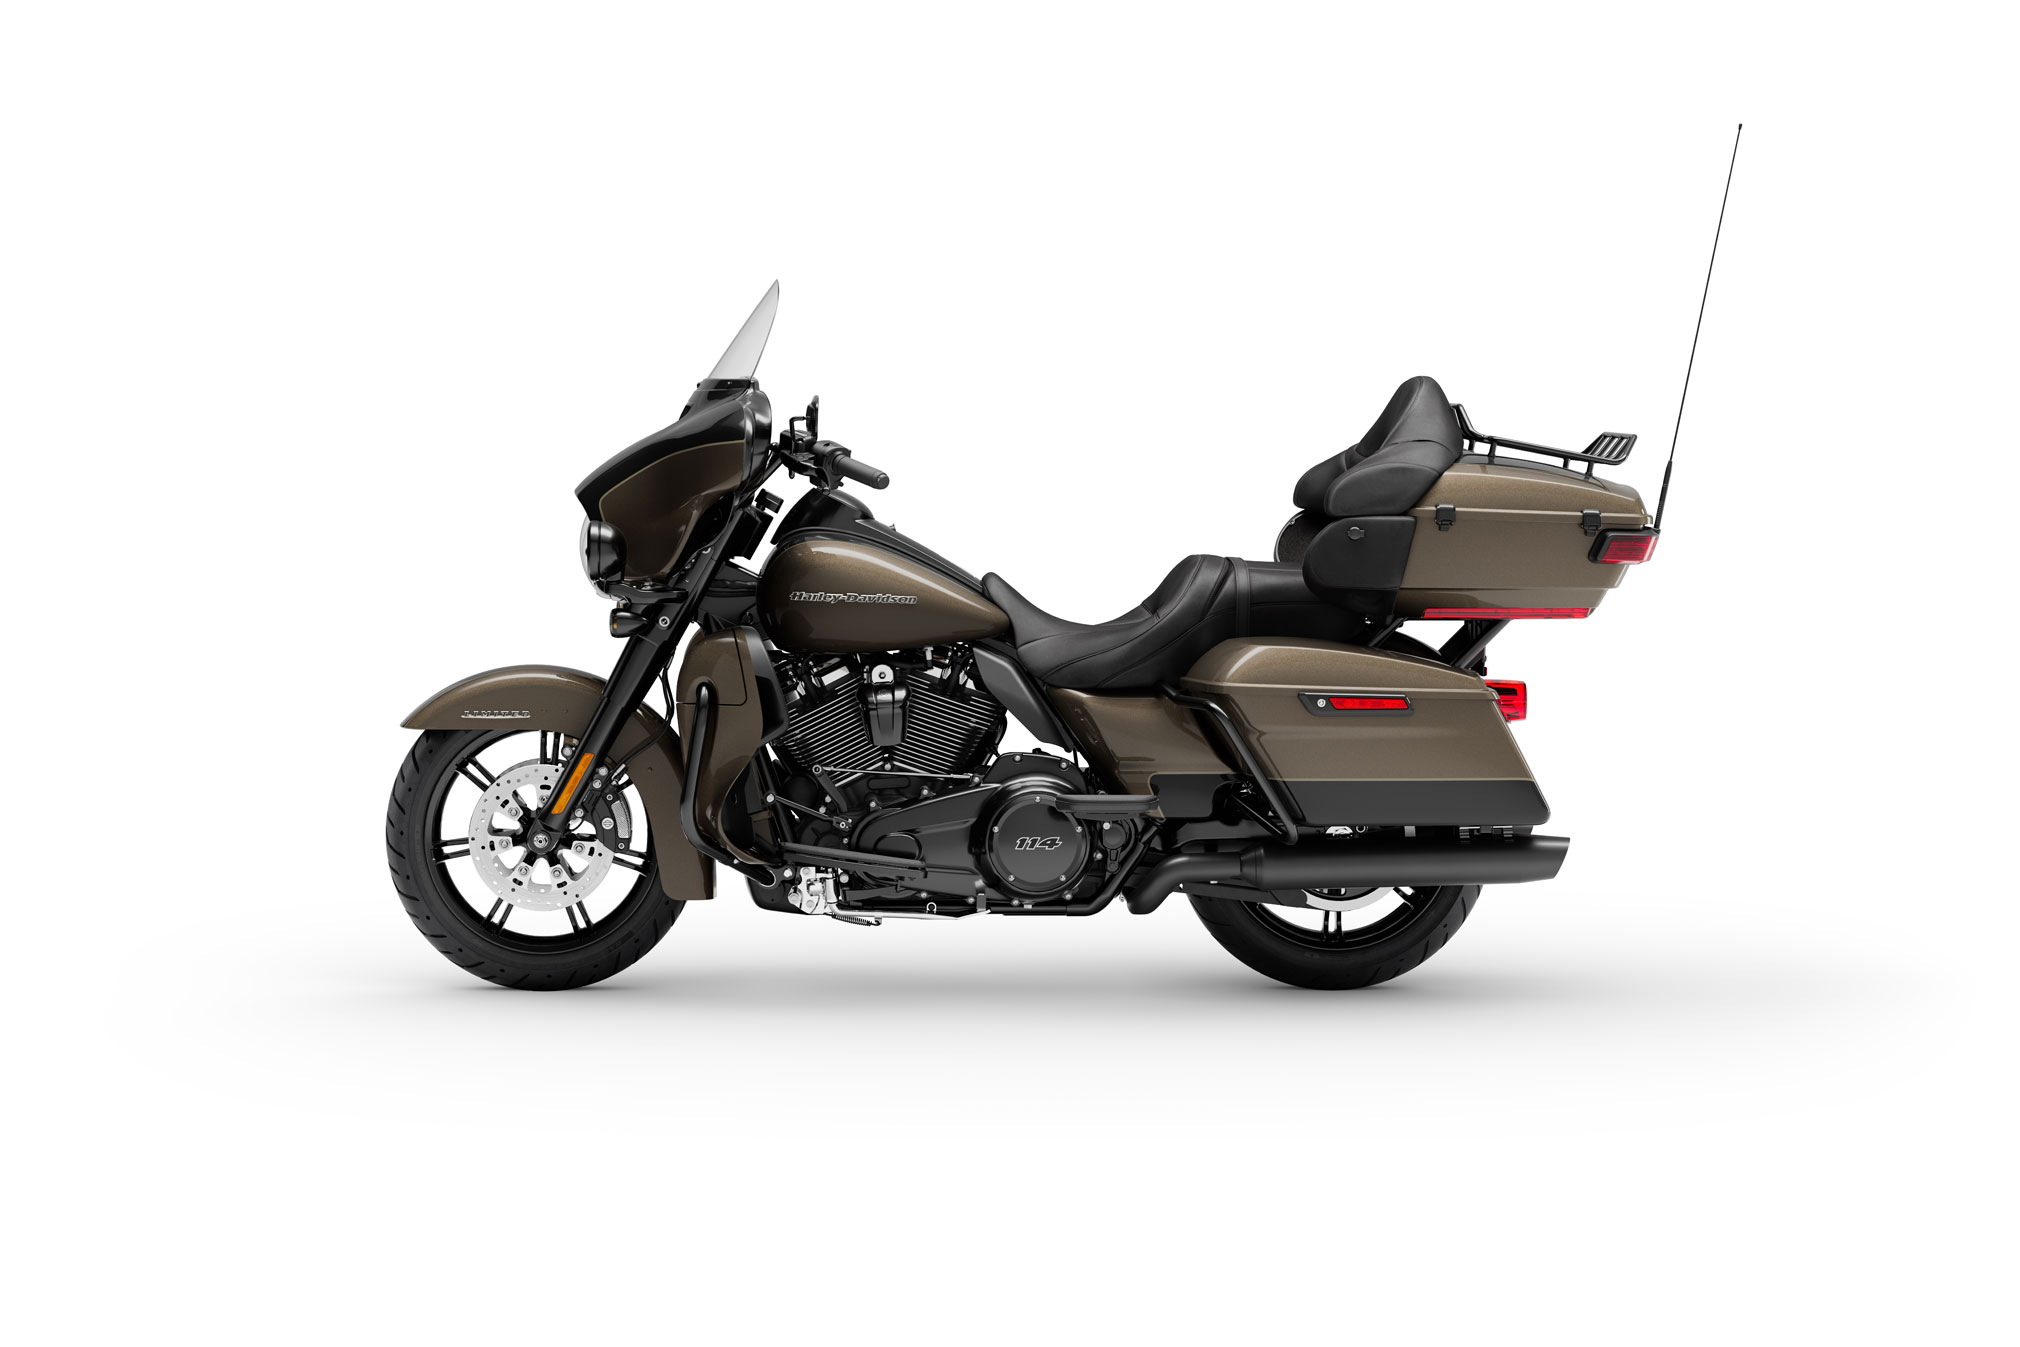 2020 Harley-Davidson Ultra Limited Guide • Total Motorcycle